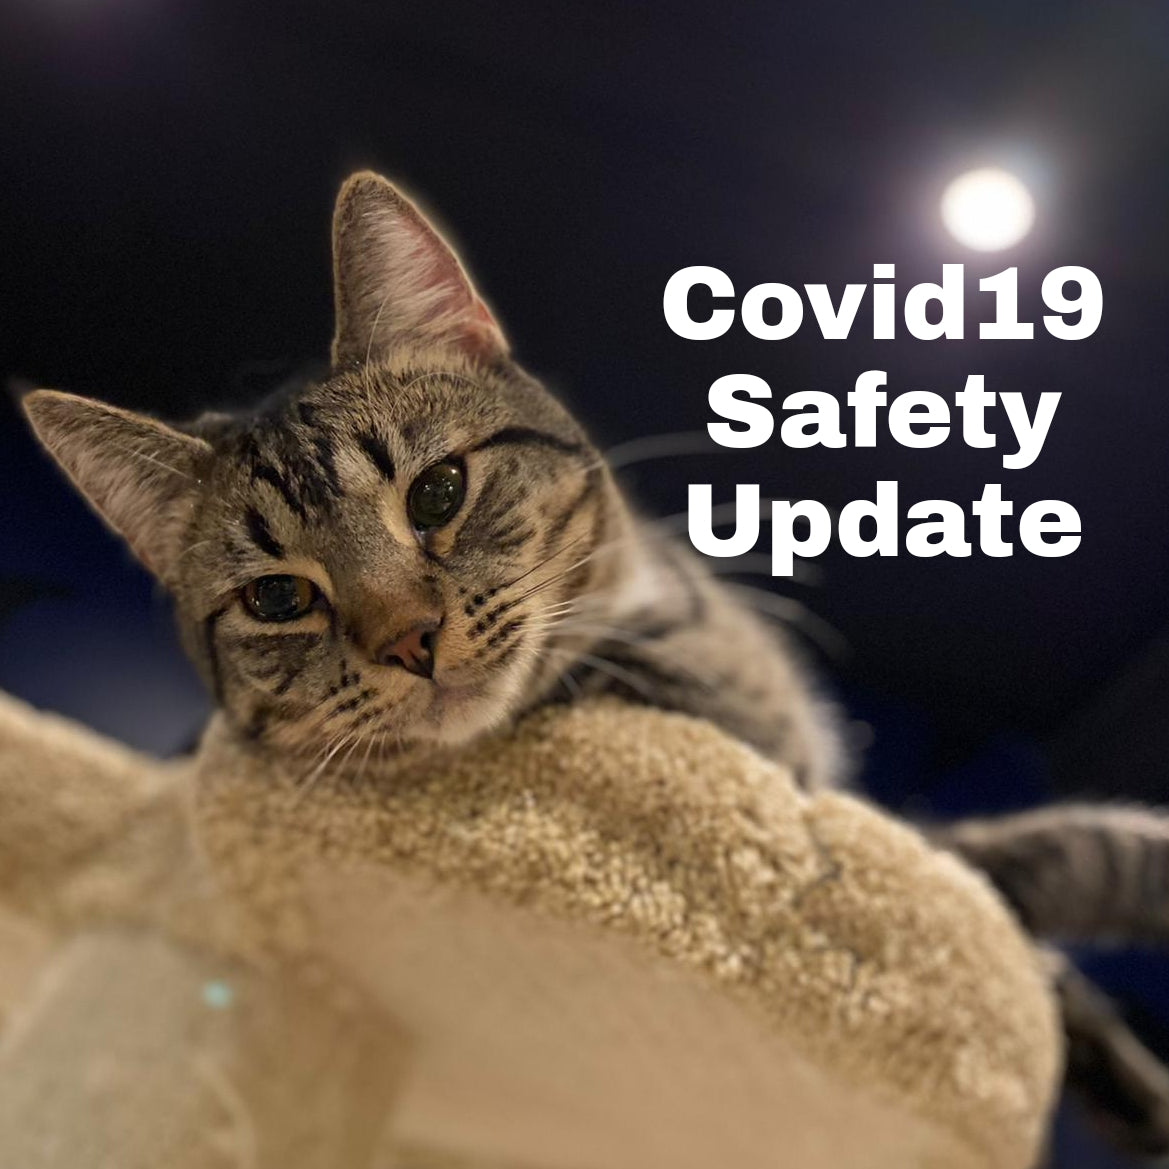 Covid19 Safety Update (November 8th 2020)